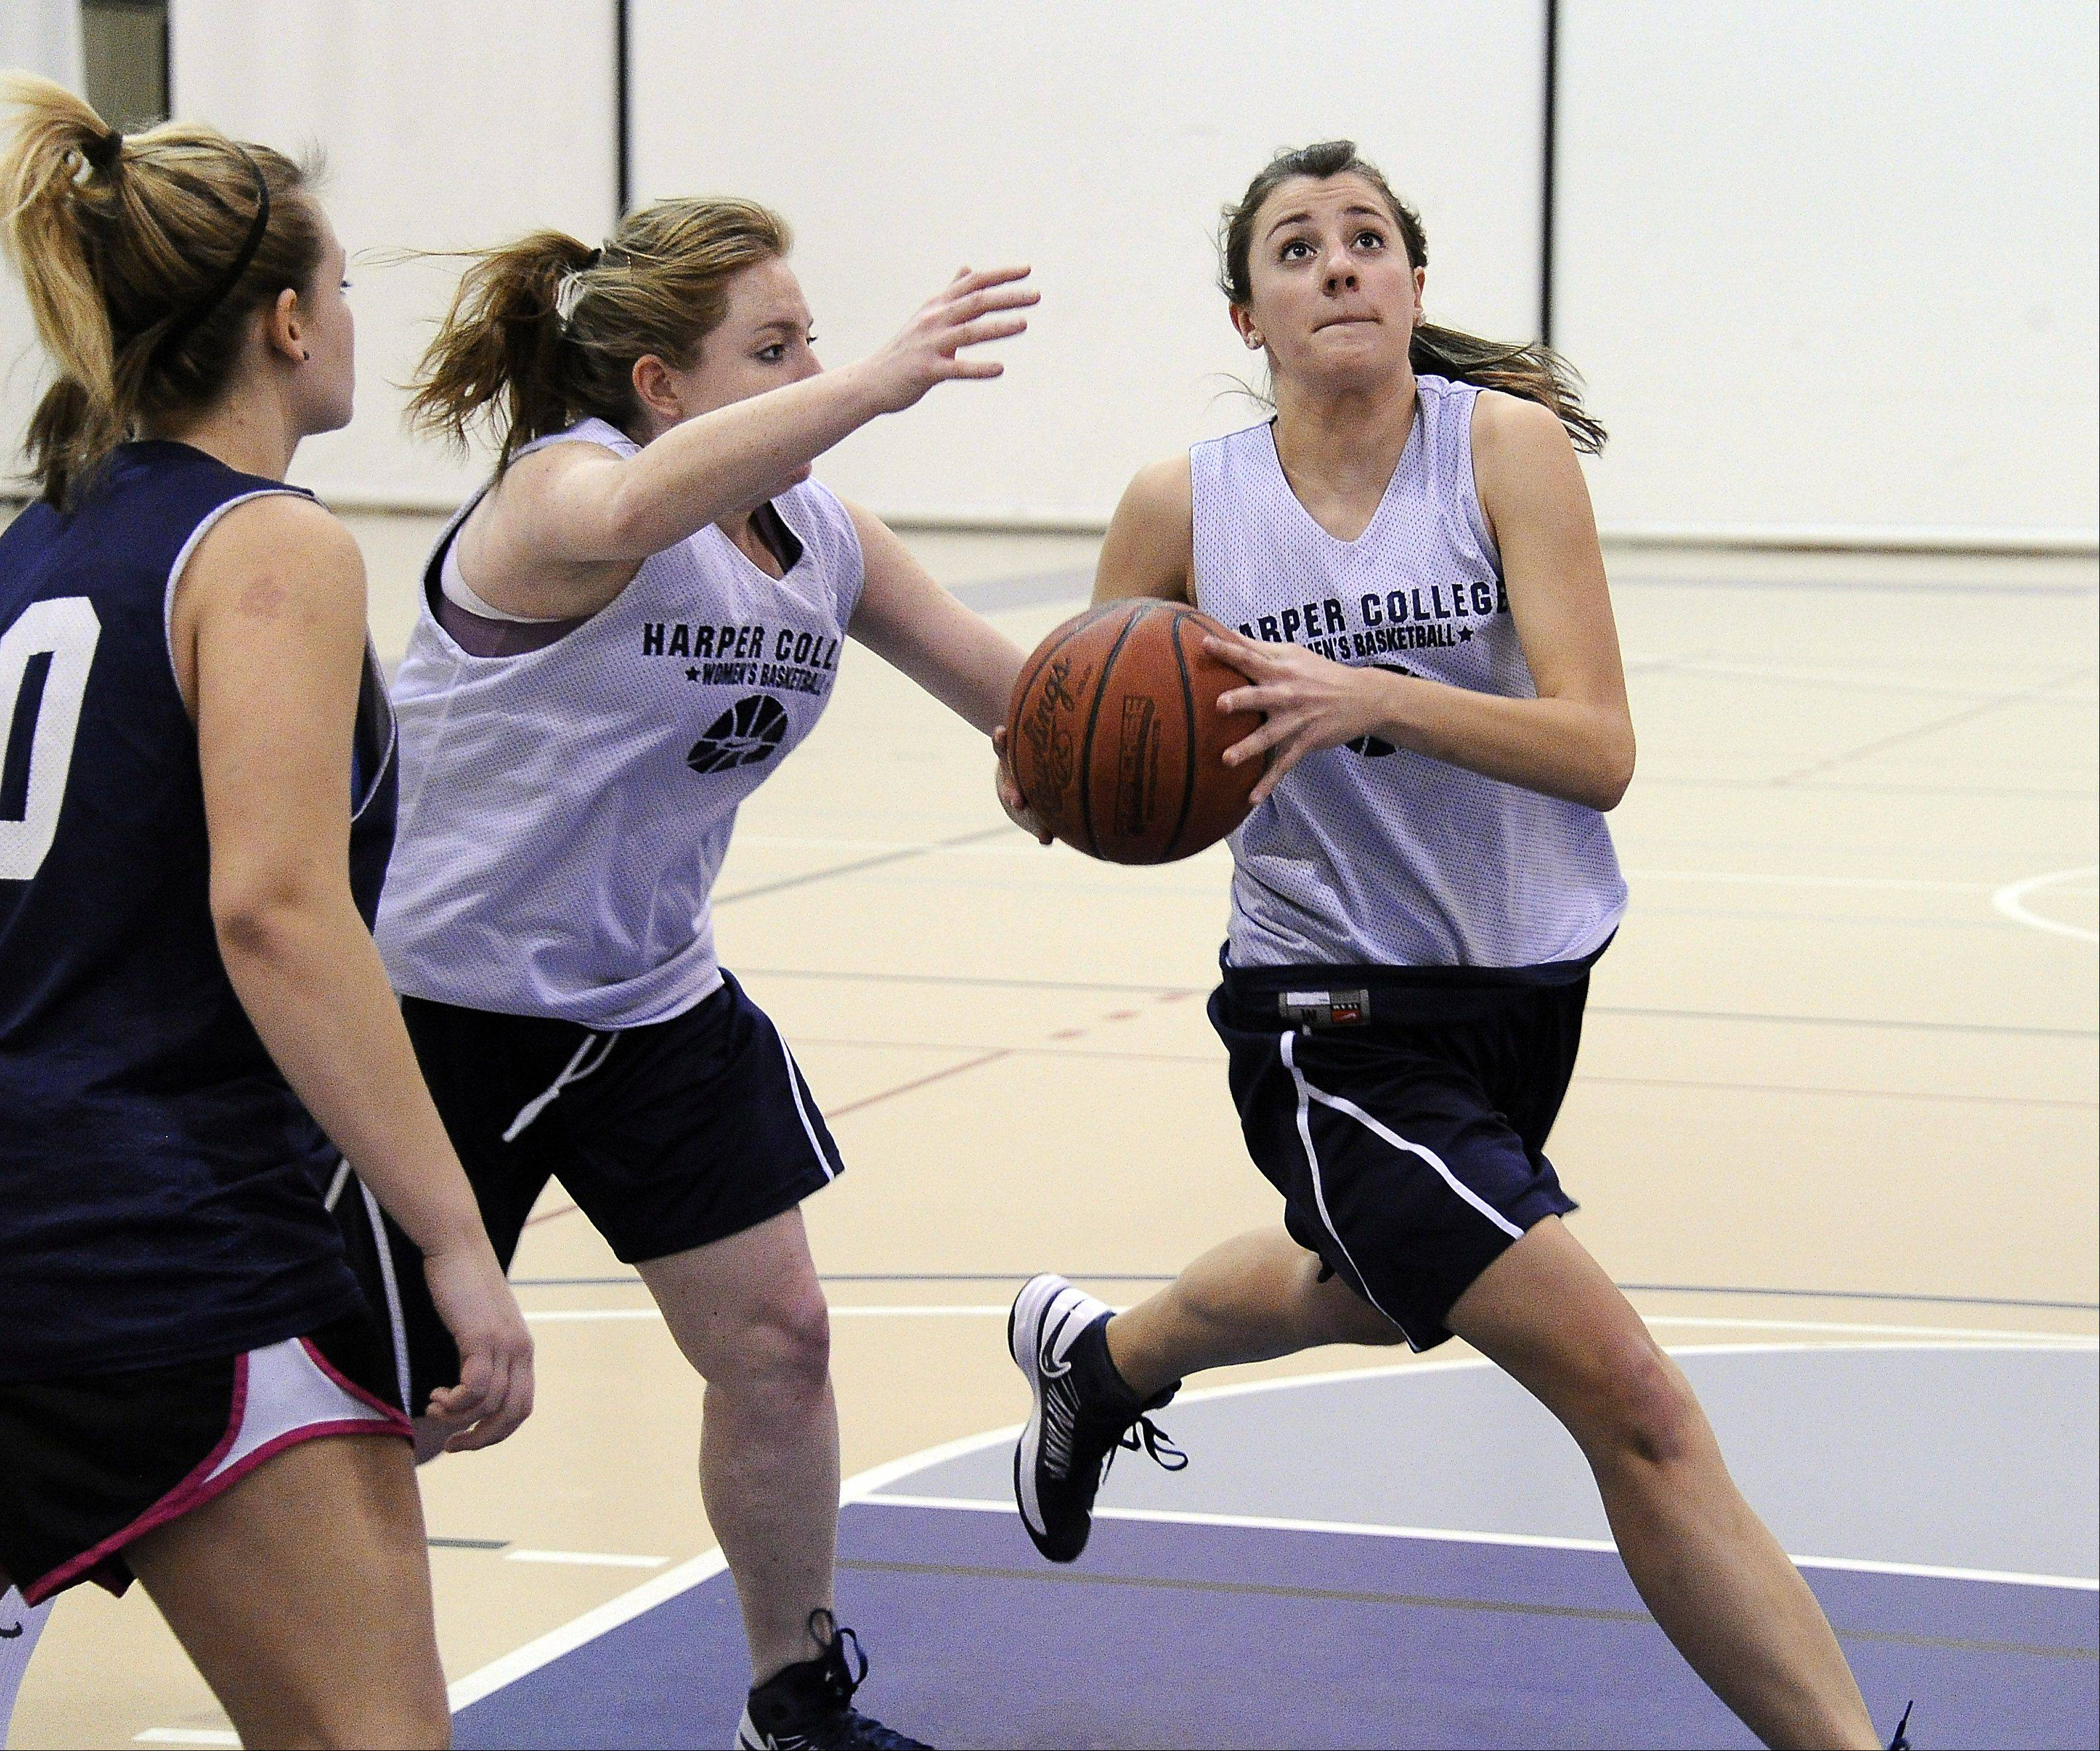 Monica Hinderer, averaging 22.2 points and 12.3 rebounds this season, continues to refine her skills in hopes of an eventual trip to the NJCAA national tournament.